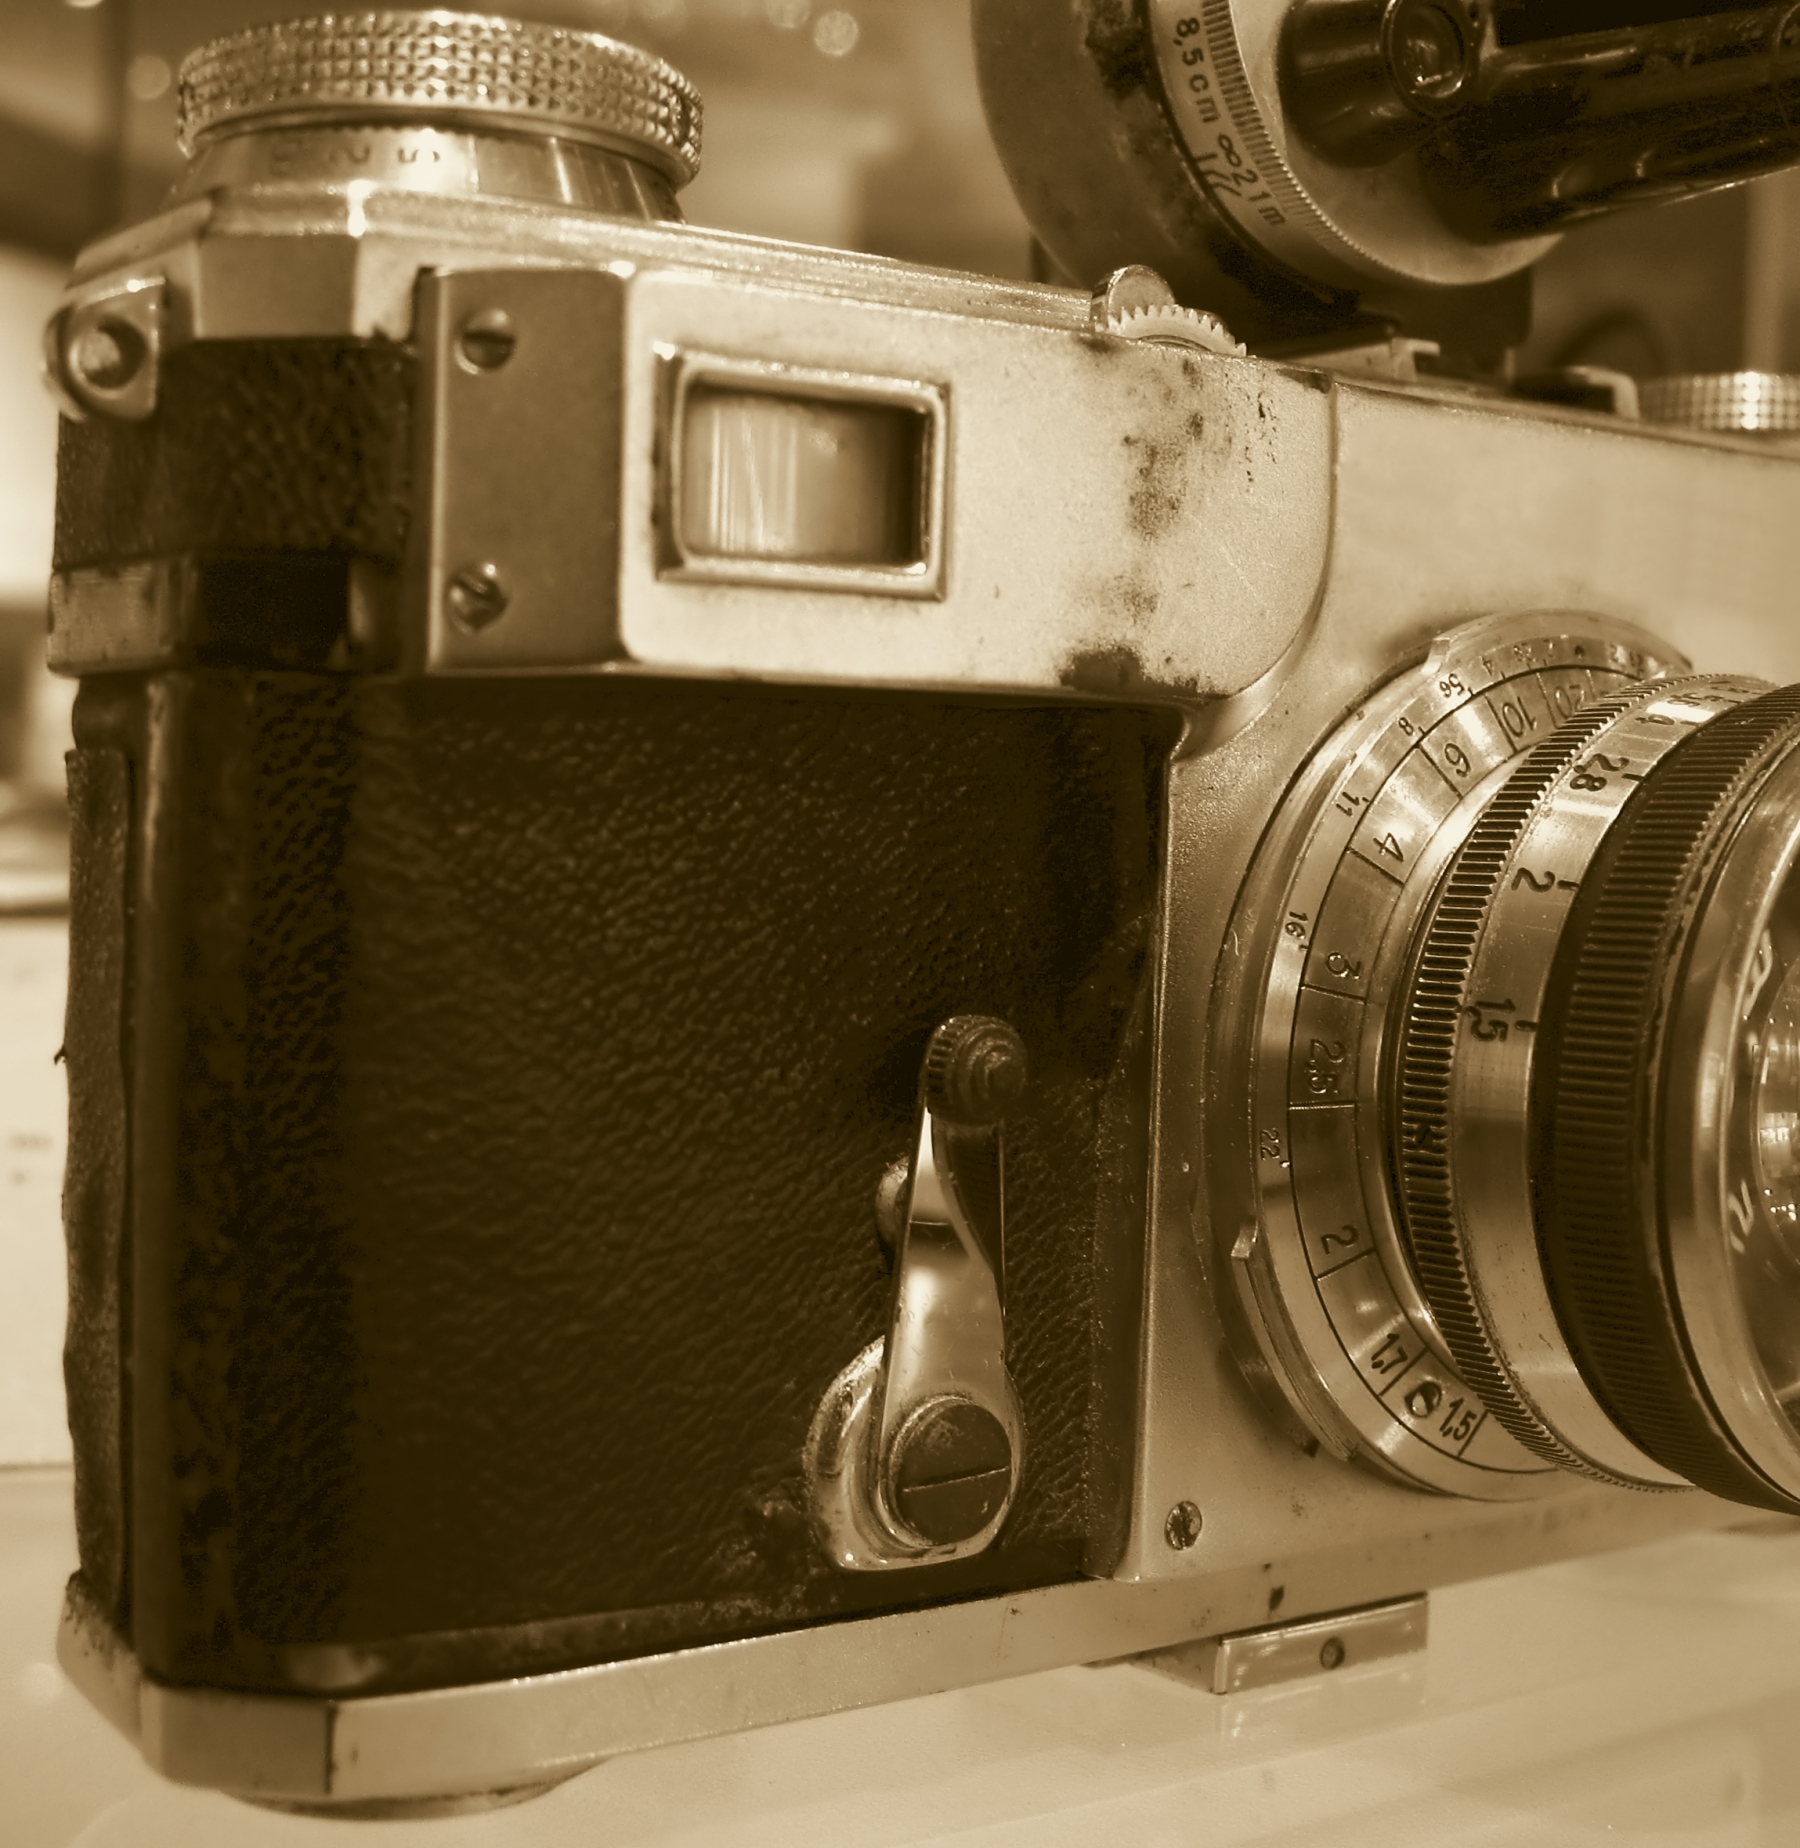 Beat Up Old Camera, Antique, Obsolete, Viewfinder, Switch, HQ Photo